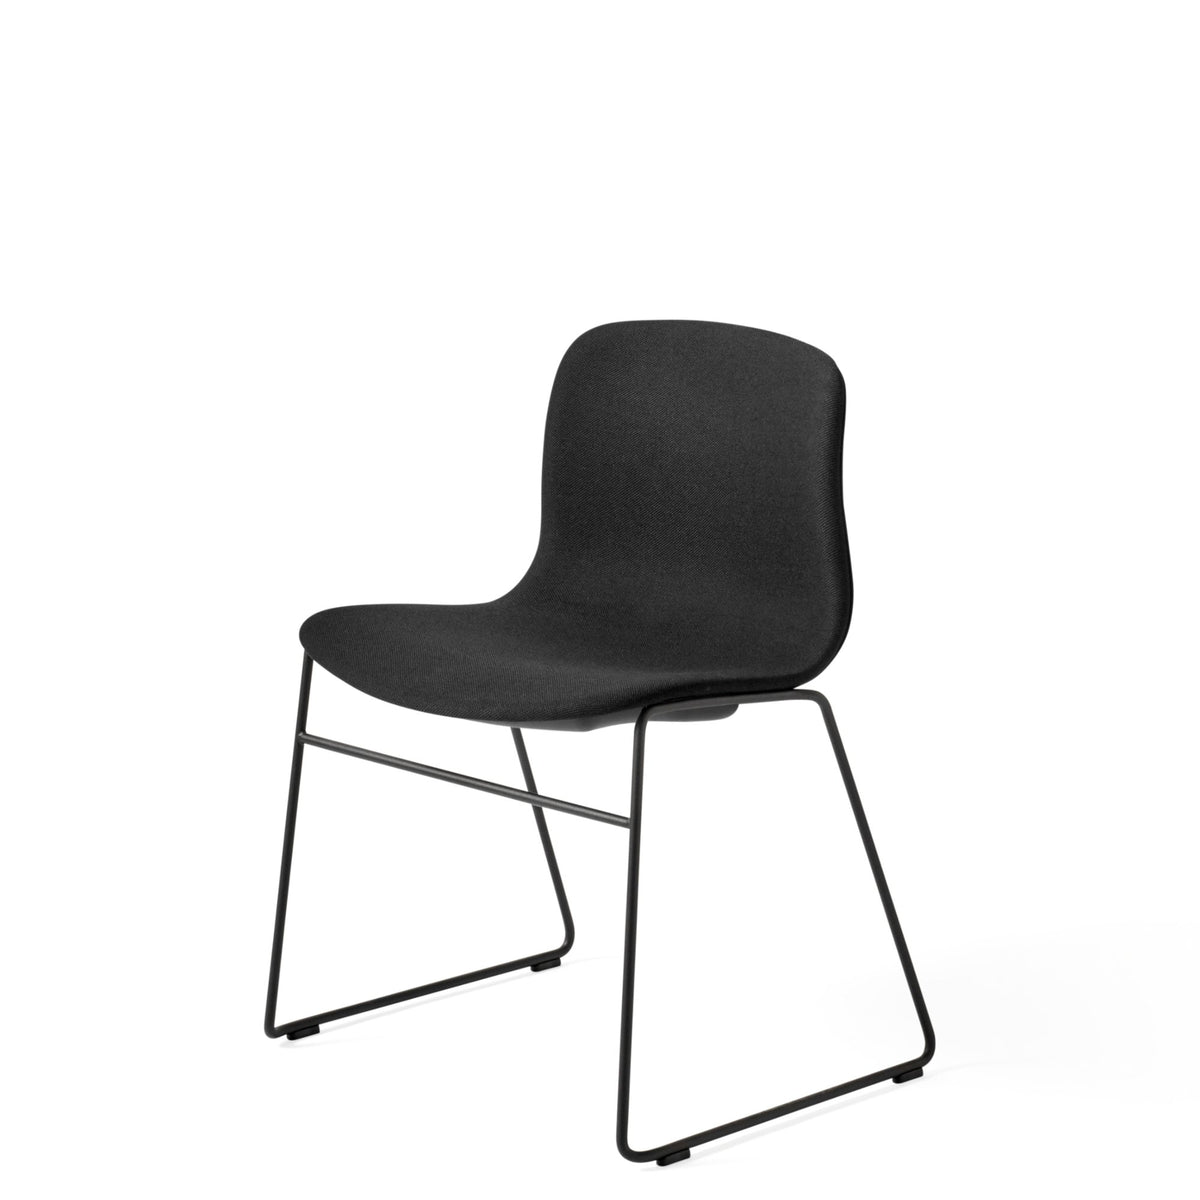 HAY About A Chair AAC 09 Steelcut 0190 Stackable Chair with Black Powder Coated Base